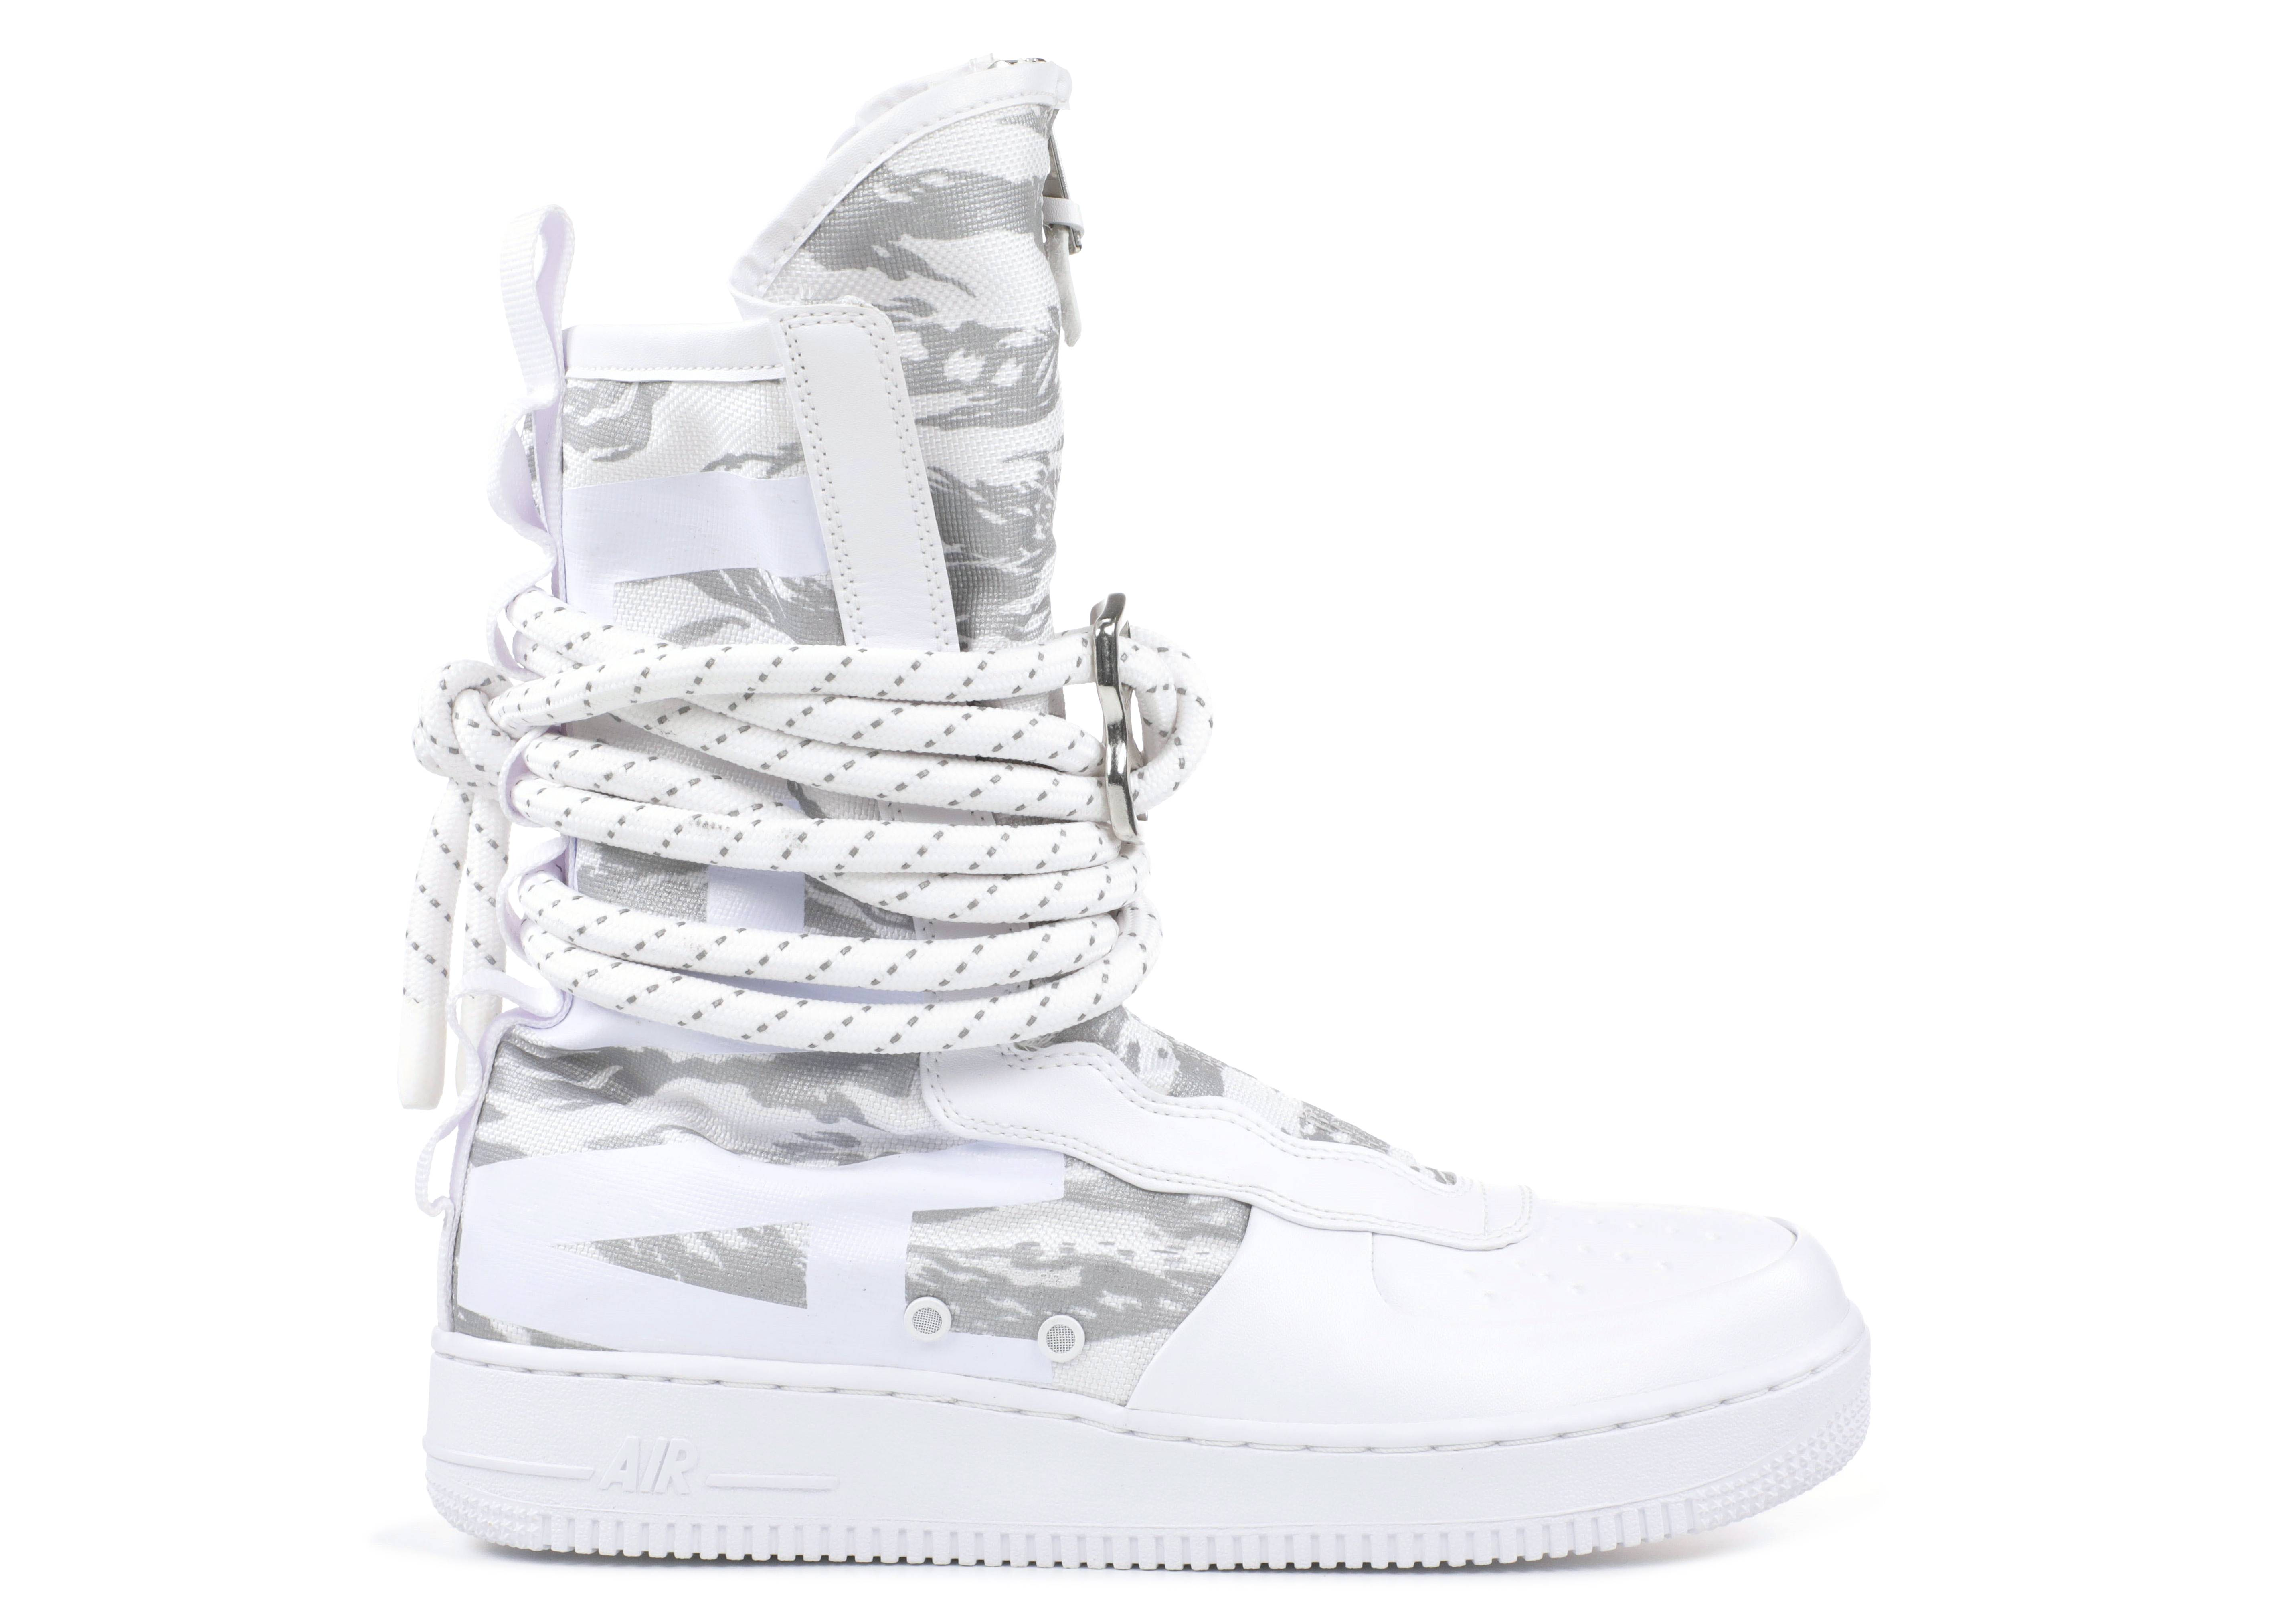 The Nike Special Field Air Force 1 High Winter Camo is